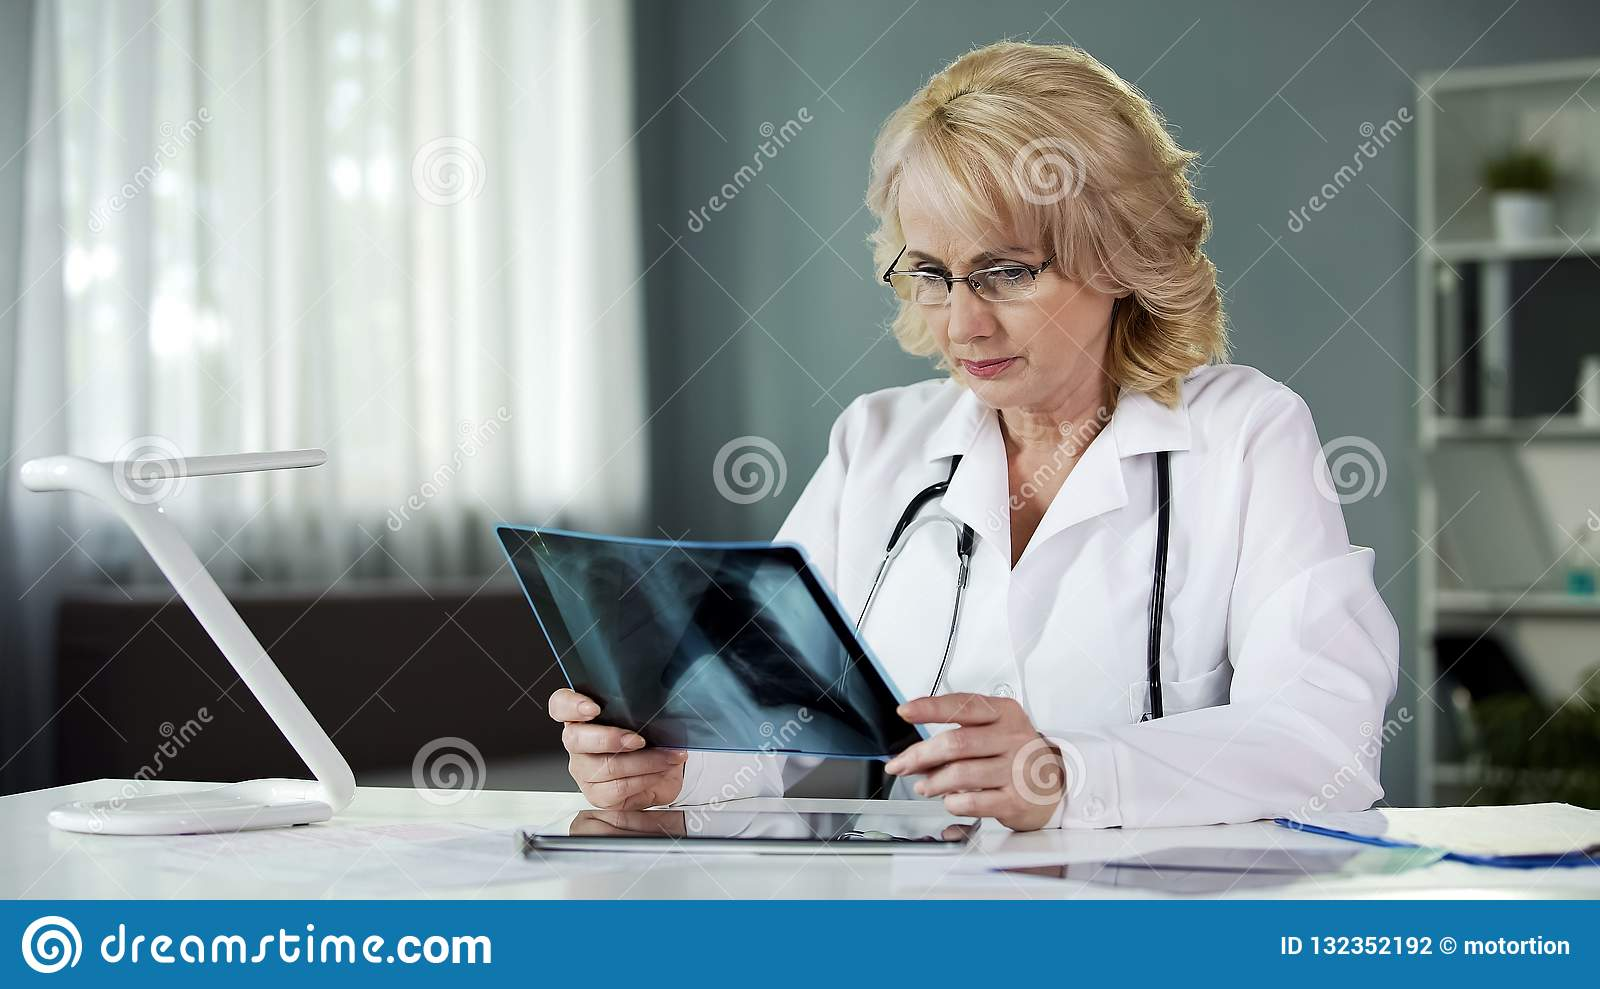 Doctor looking at scan, examining X-ray of patient lungs, health care, medicine